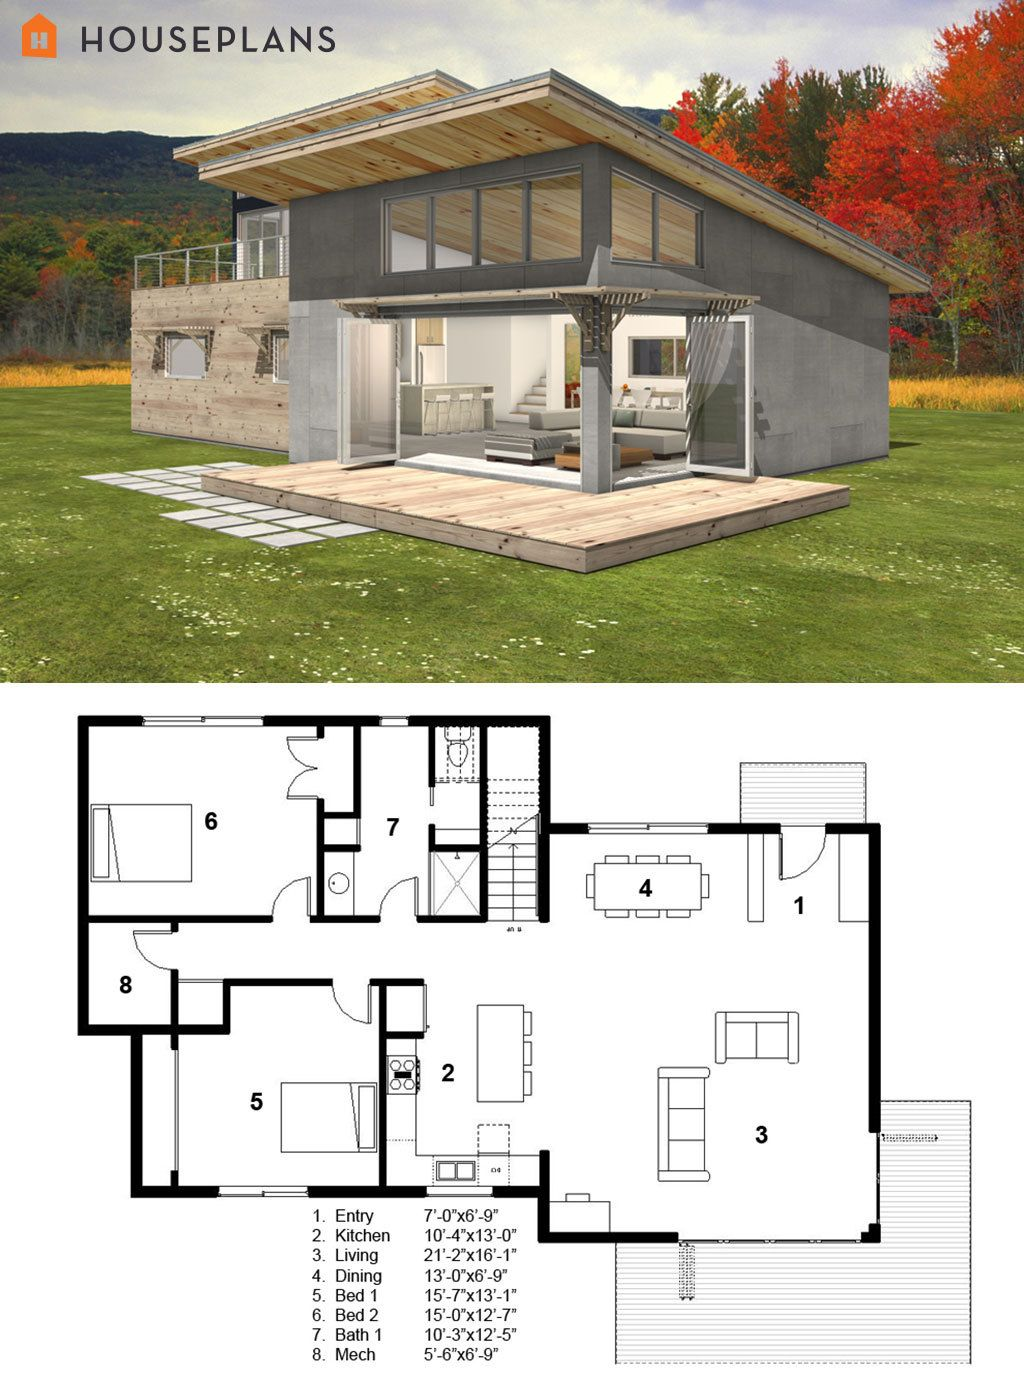 Modern style house plan 3 beds baths 2115 sq ft for Modern 3 bedroom house design